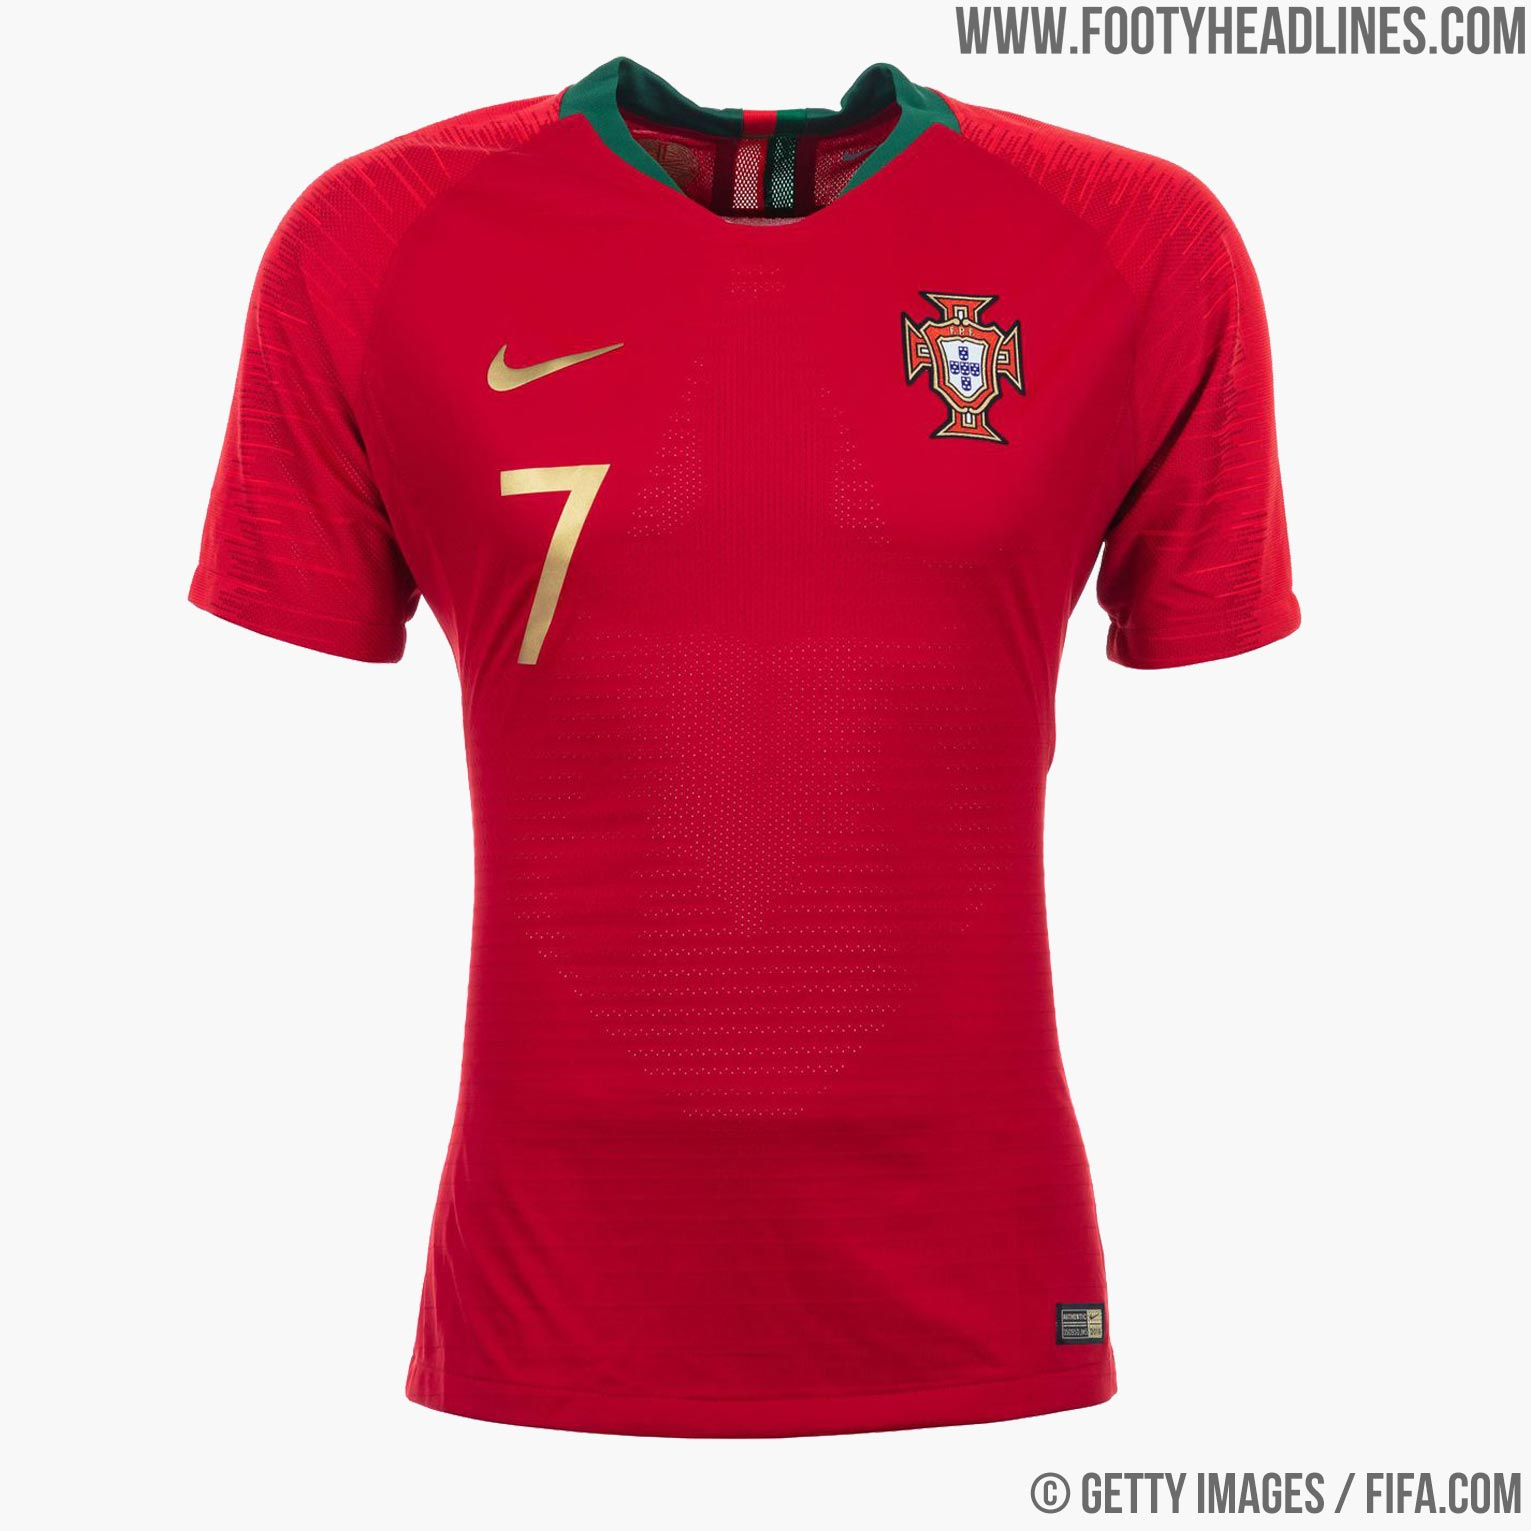 2749763aa1c Portugal 2018 World Cup Home Kit Buy now. Free worldwide delivery on all  orders